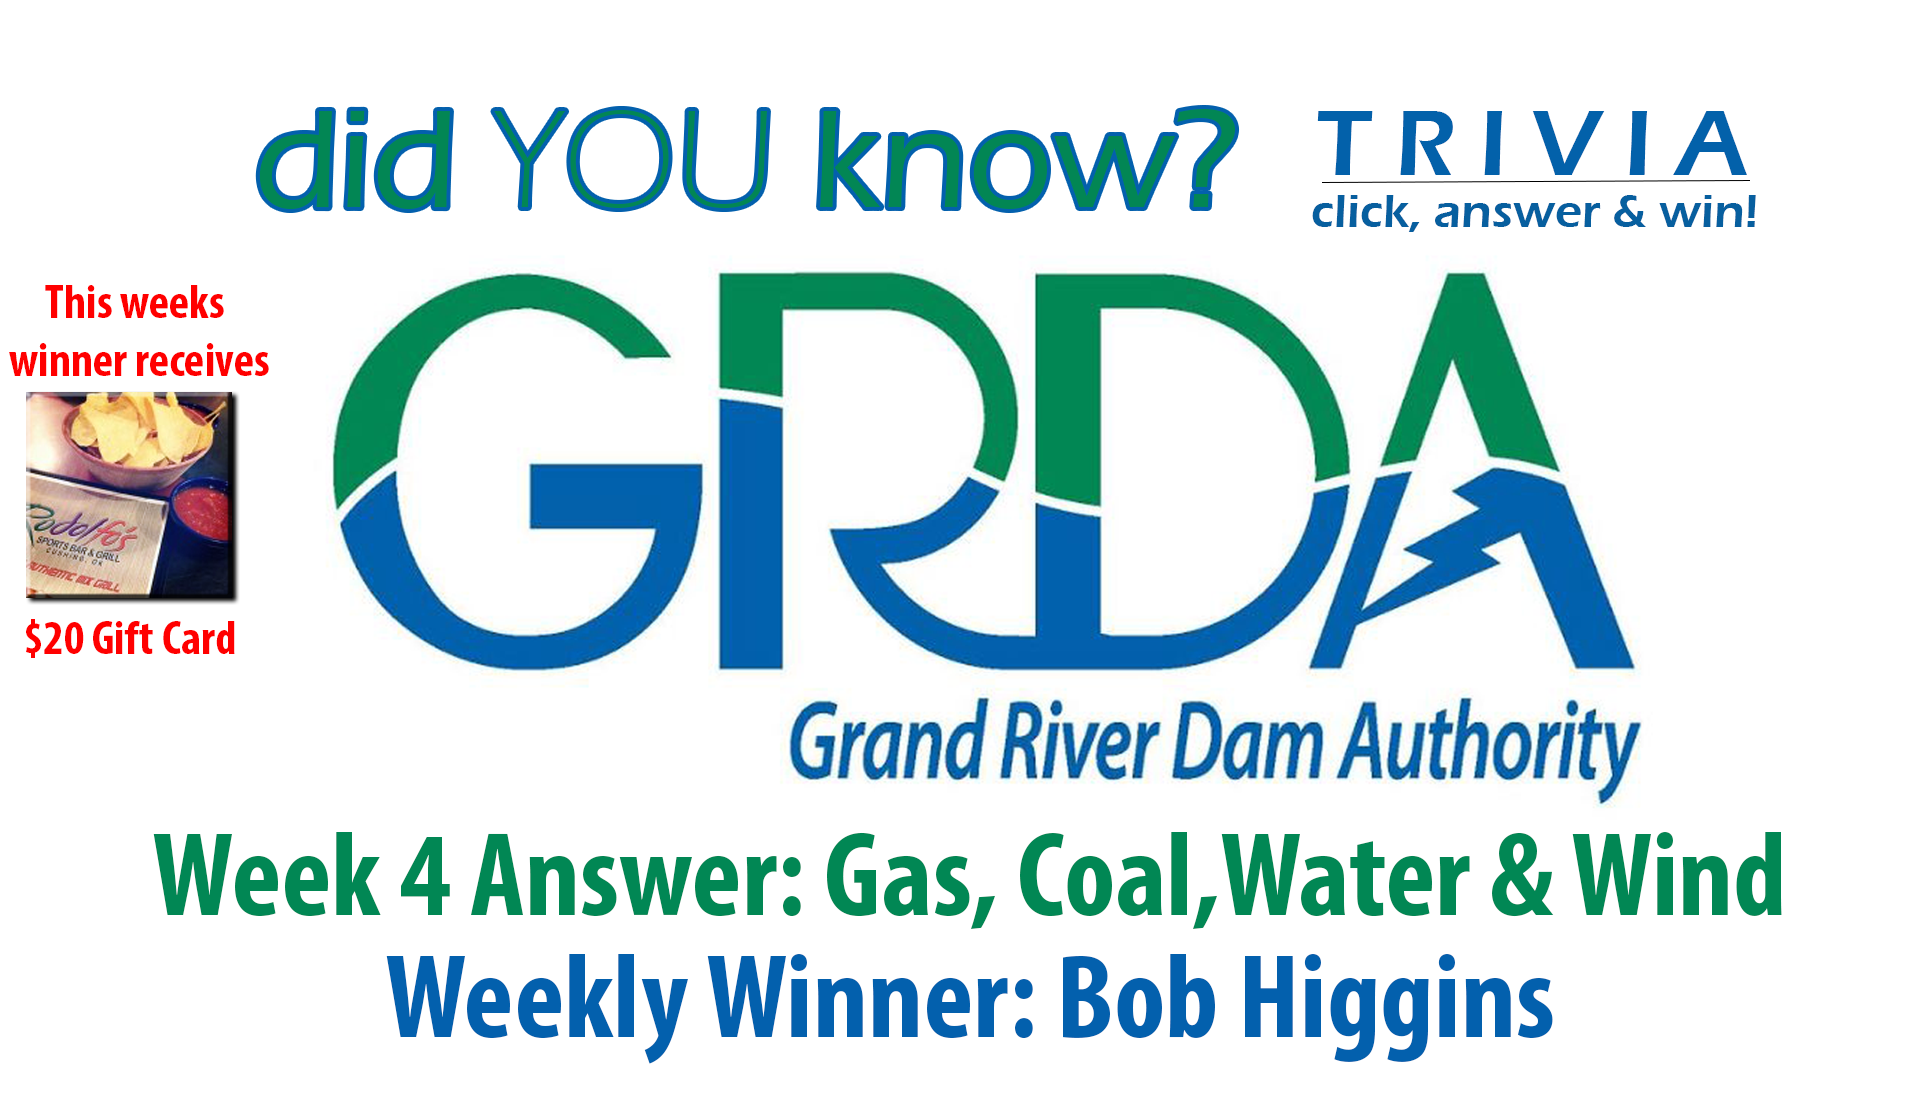 GRDA Did You Know Graphic V1 Wk 4 Winner Graphic.png